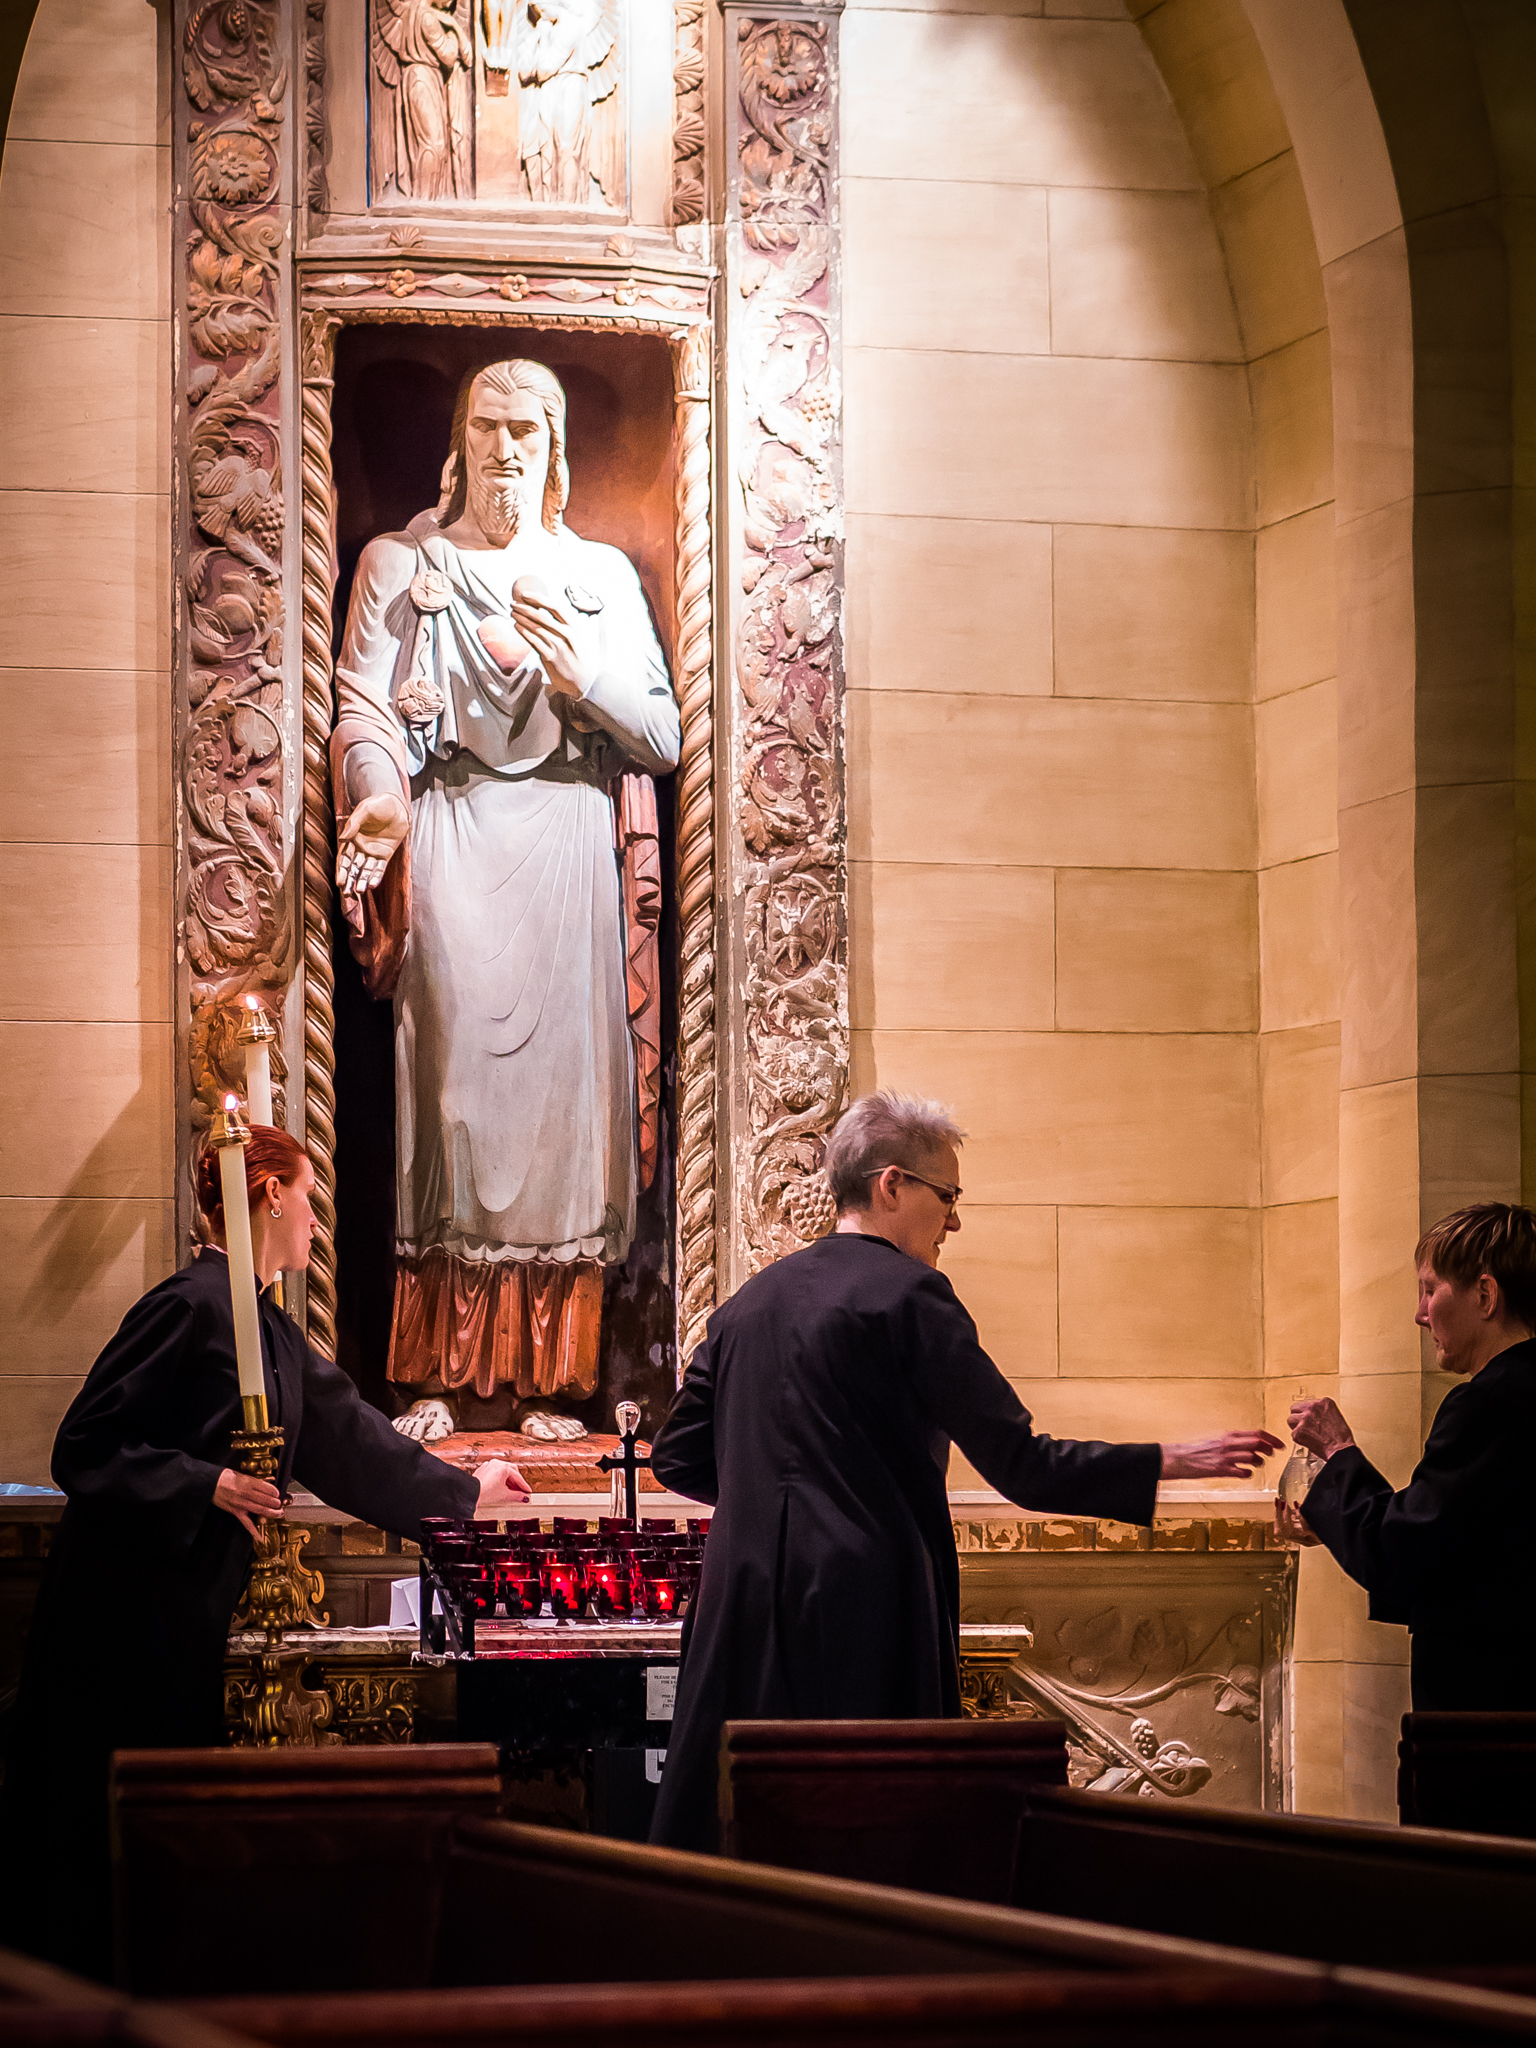 Before the Solemn Mass the servers place bread and wine at the Sacred Heart Shrine.  Photo by Ricardo Gomez